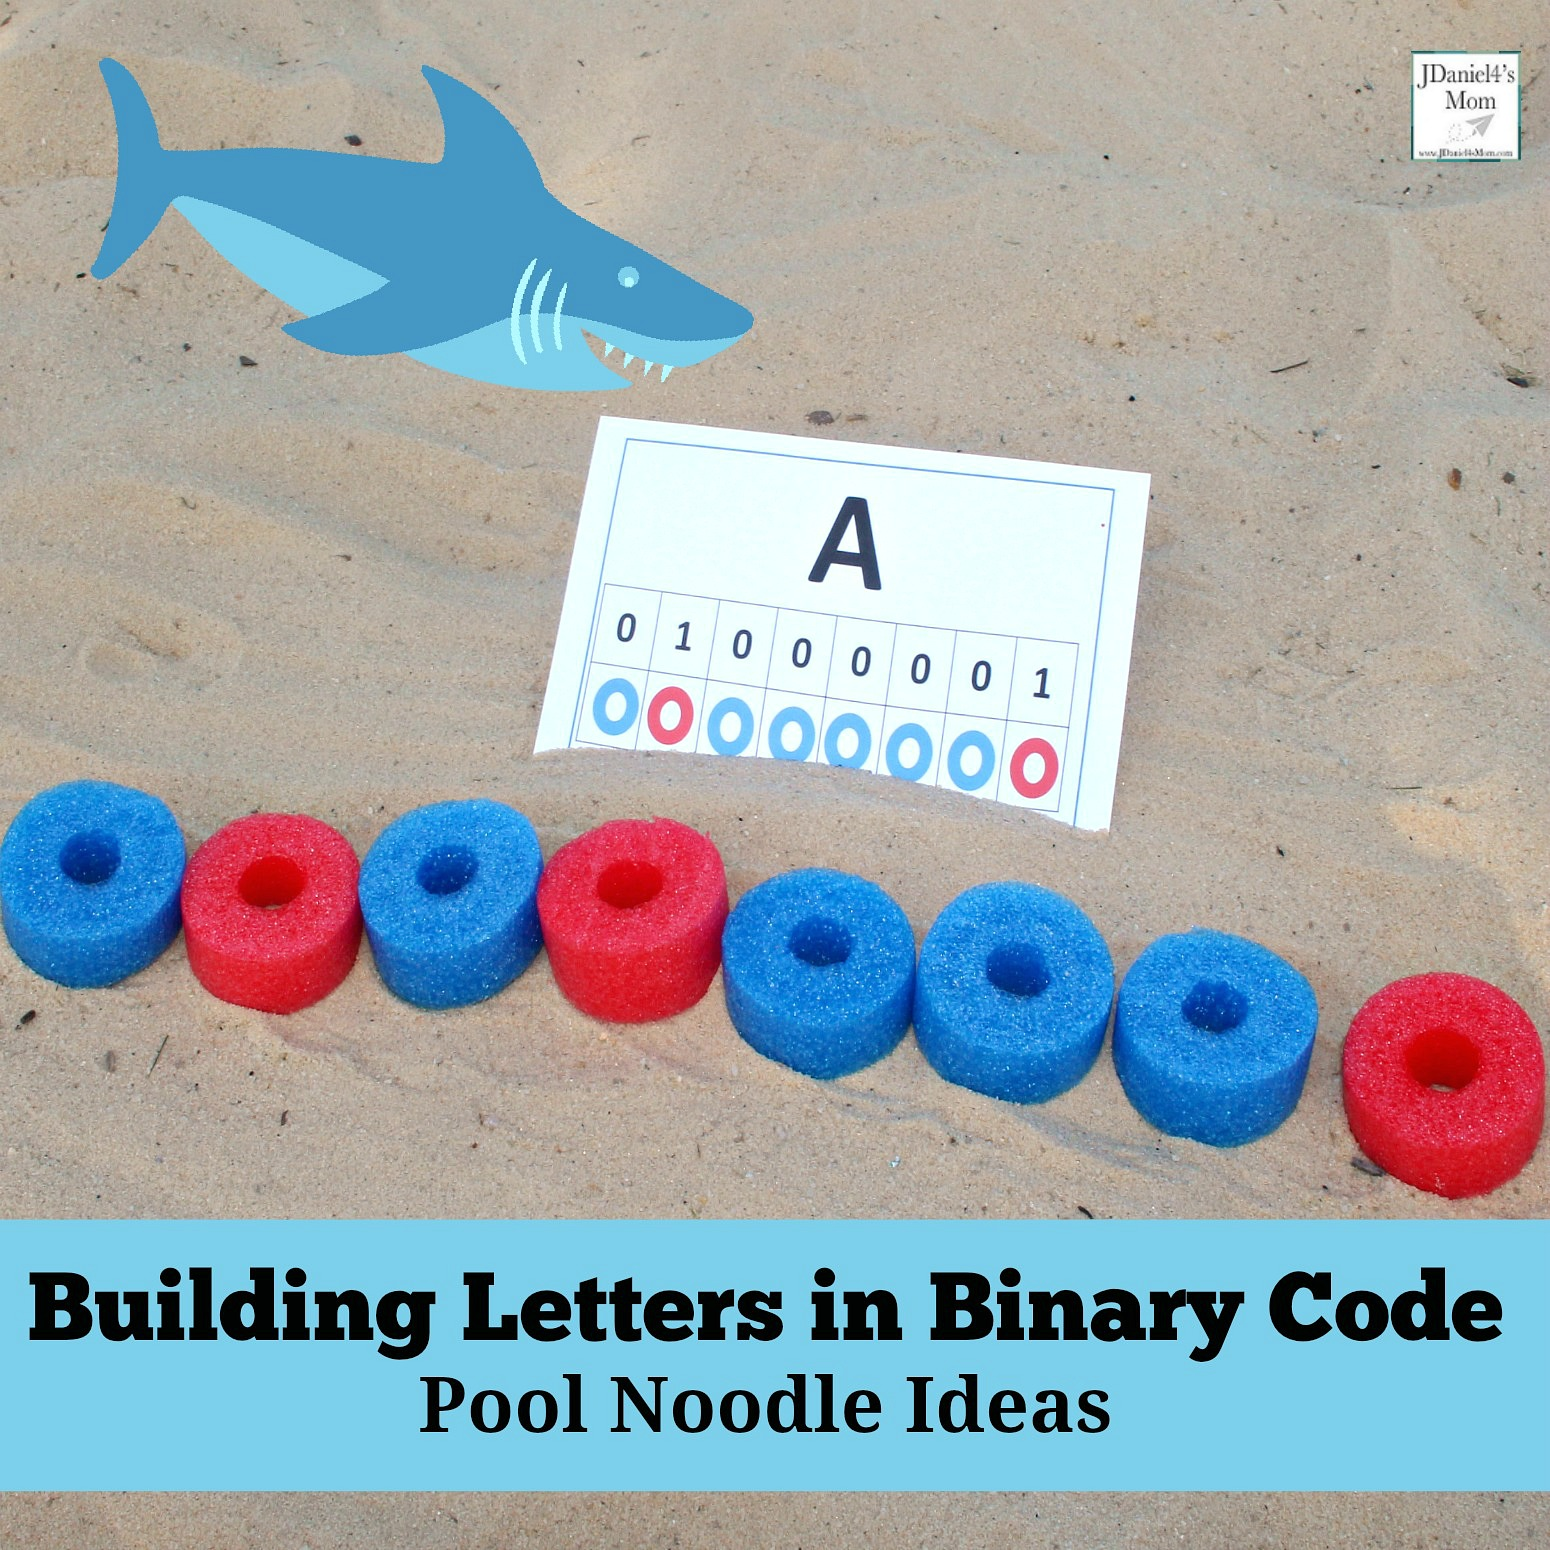 Building Letters in Binary Code